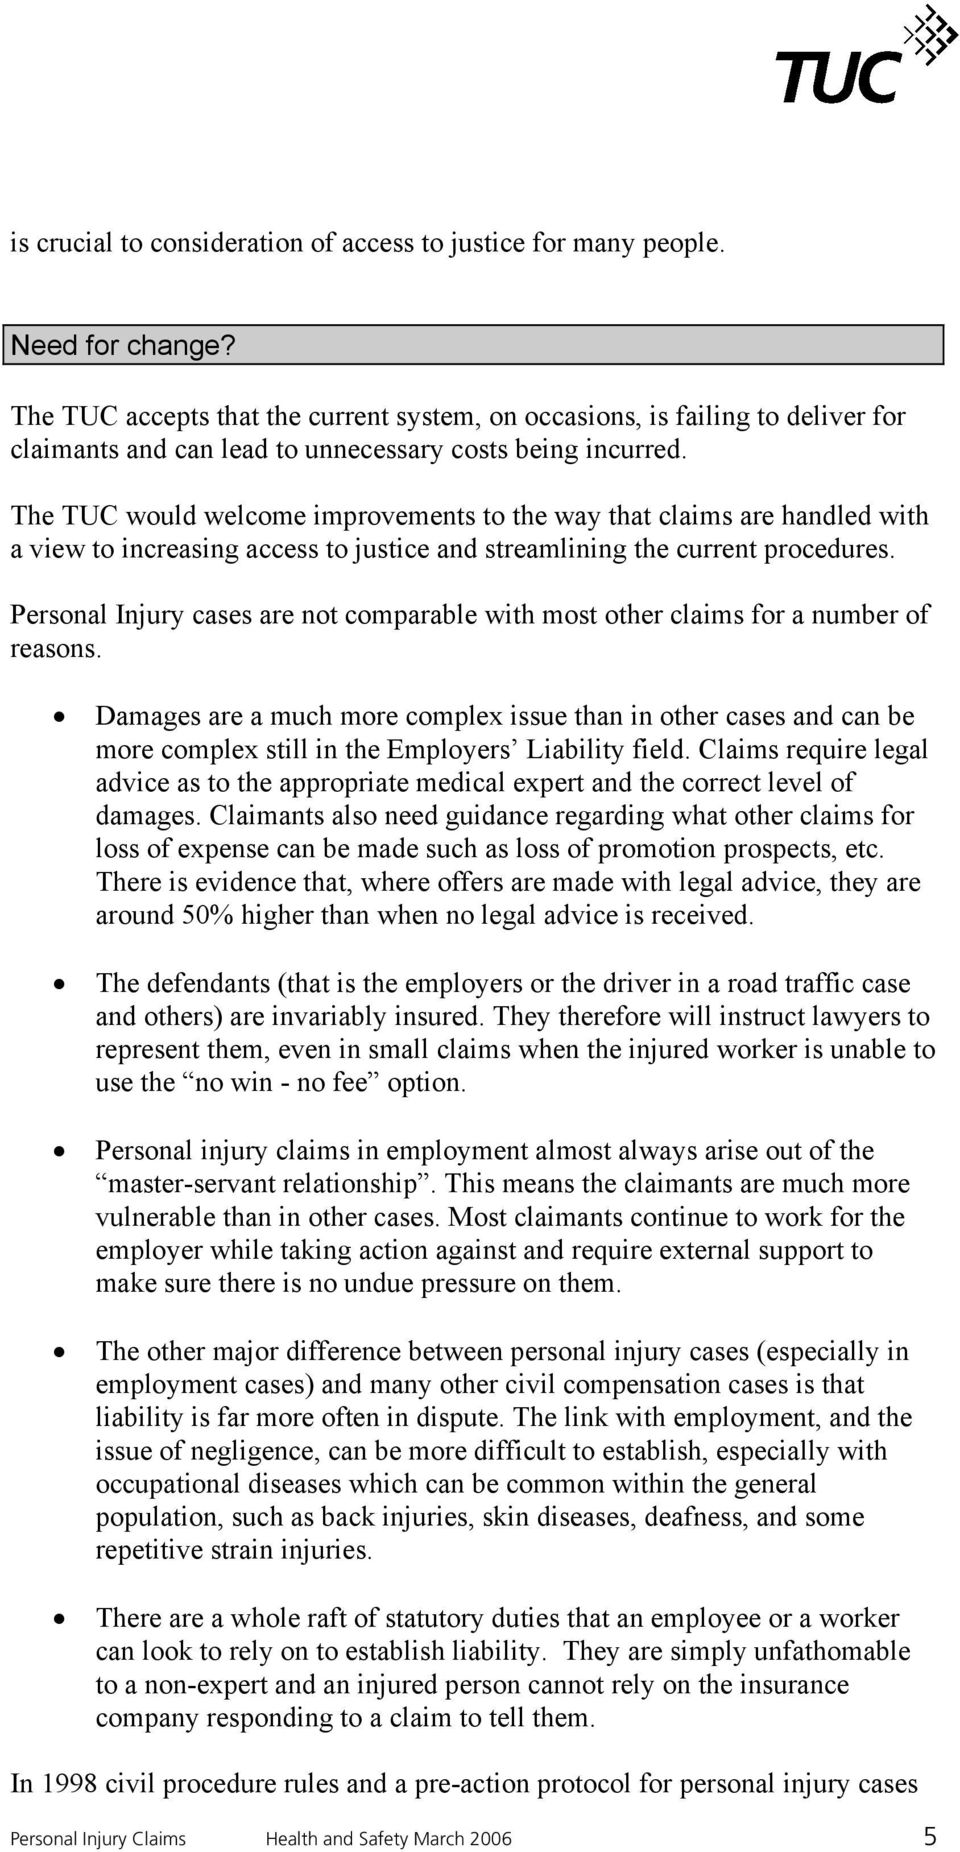 The TUC would welcome improvements to the way that claims are handled with a view to increasing access to justice and streamlining the current procedures.